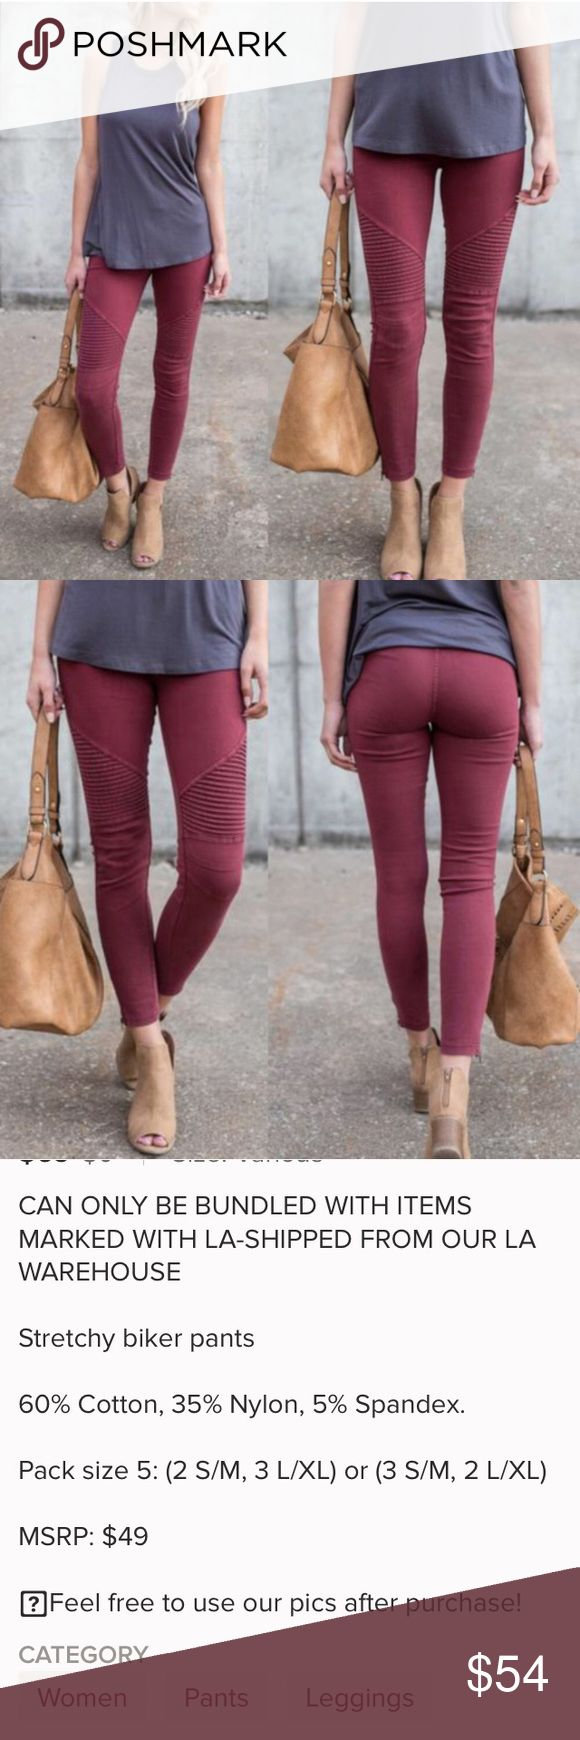 Blushed Berries • Stretchy Biker Leggings I'm in love with the biker pants!! So COMFY and TRENDY!!   60% cotton 35% Nylon 5% Spandex  No function pockets  Ankle Zipper  Also available in Grey ( without ankle zipper) and Dusty Rose Pants Leggings